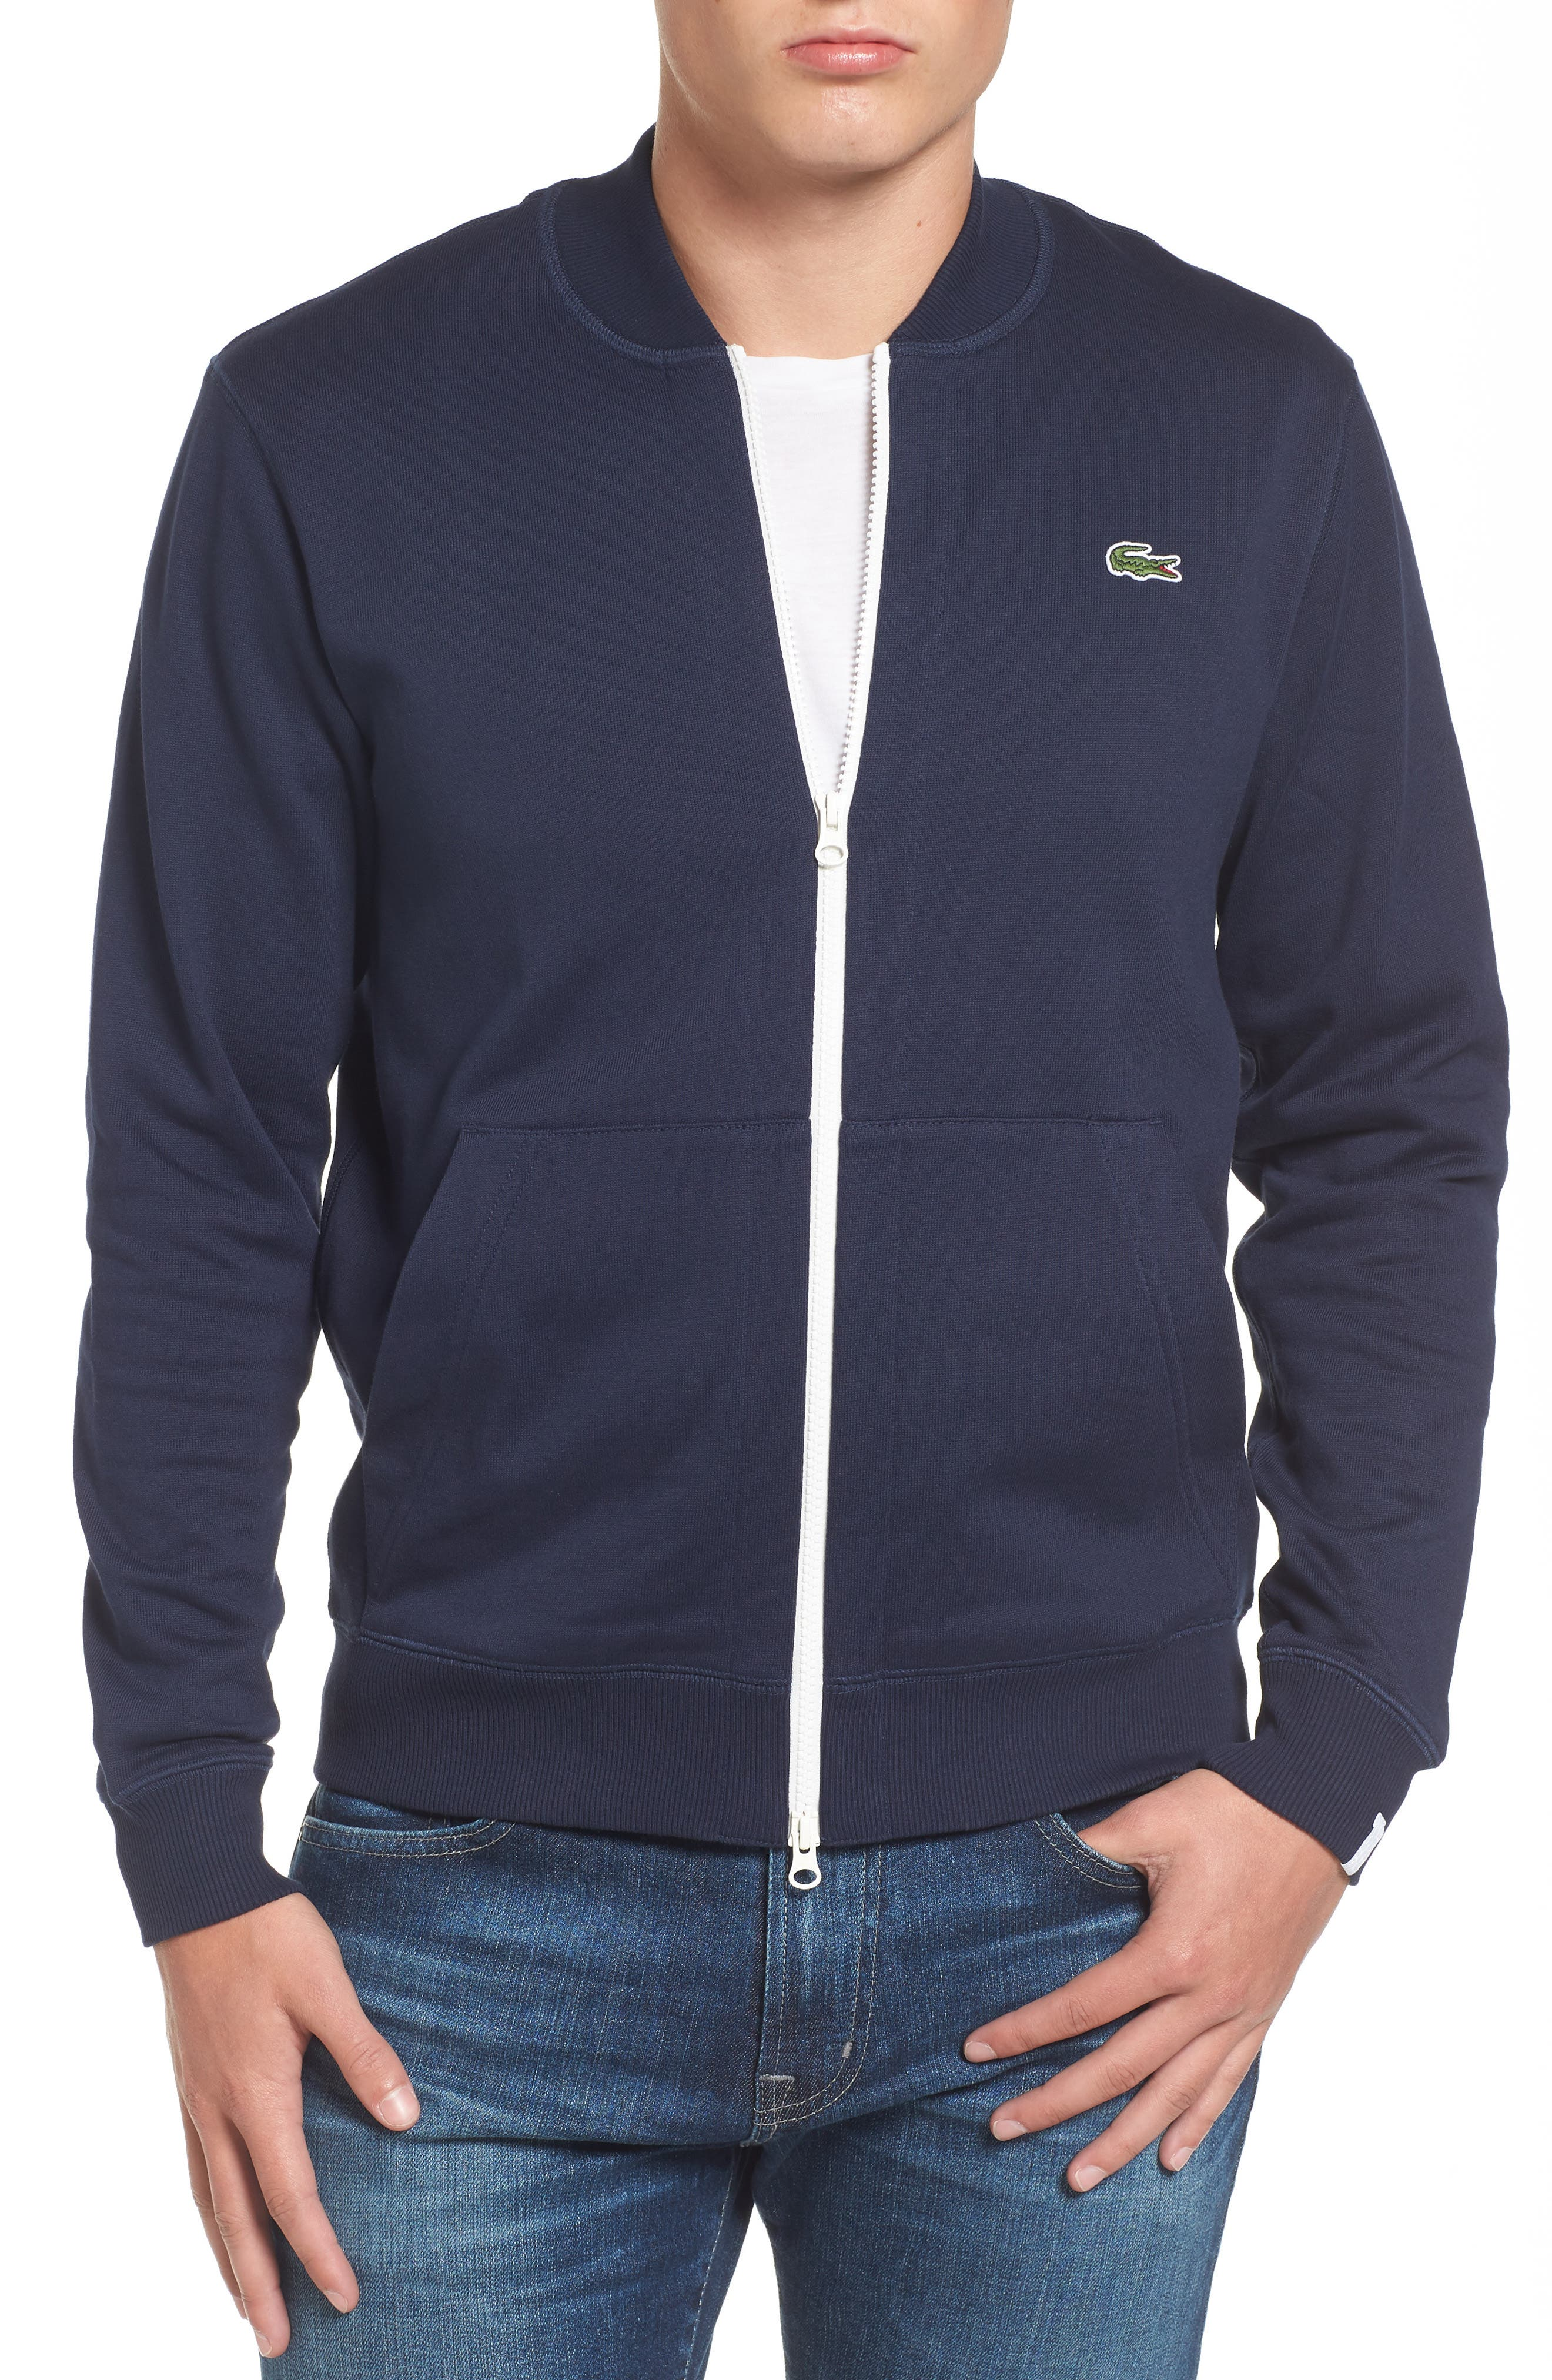 Main Image - Lacoste Banana Collar Zip Jacket